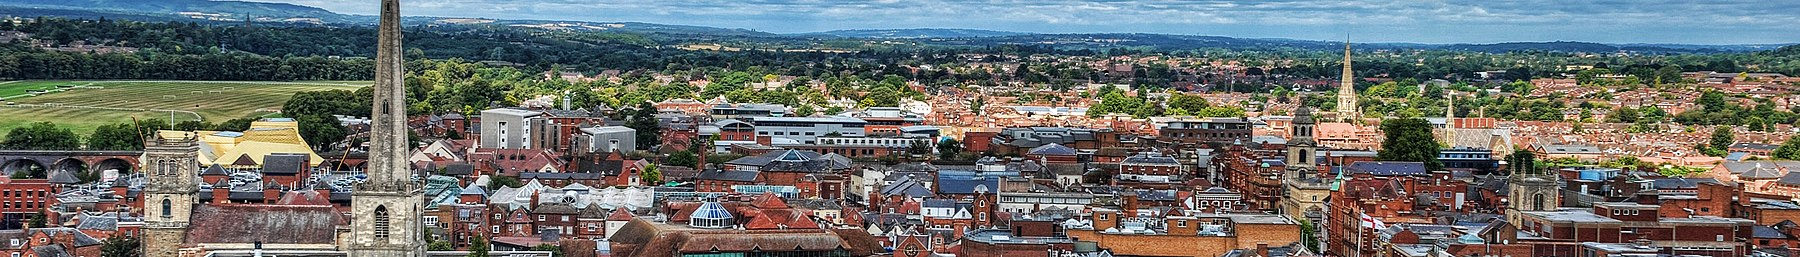 Worcester from the tower of Worcester Cathedral, Worcestershire